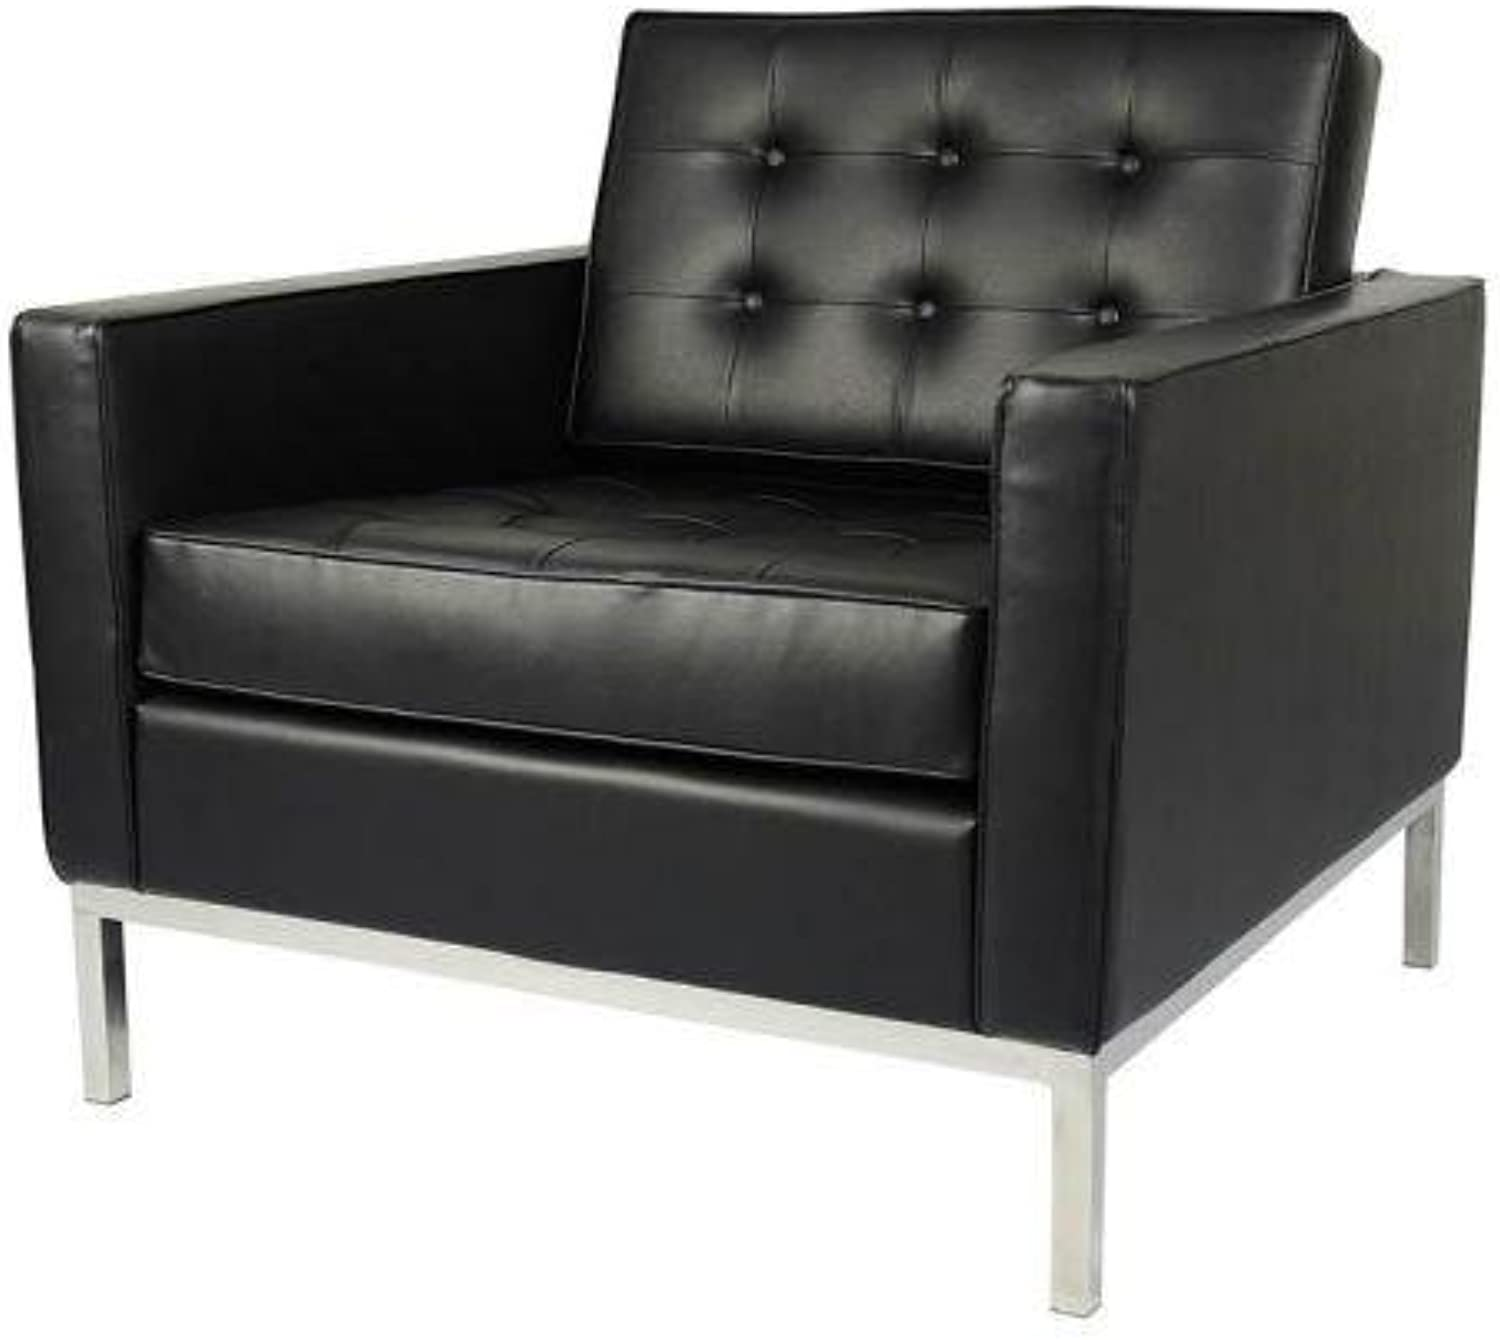 Florence Knoll Replica Armchair Sofa Premium Leather - Black